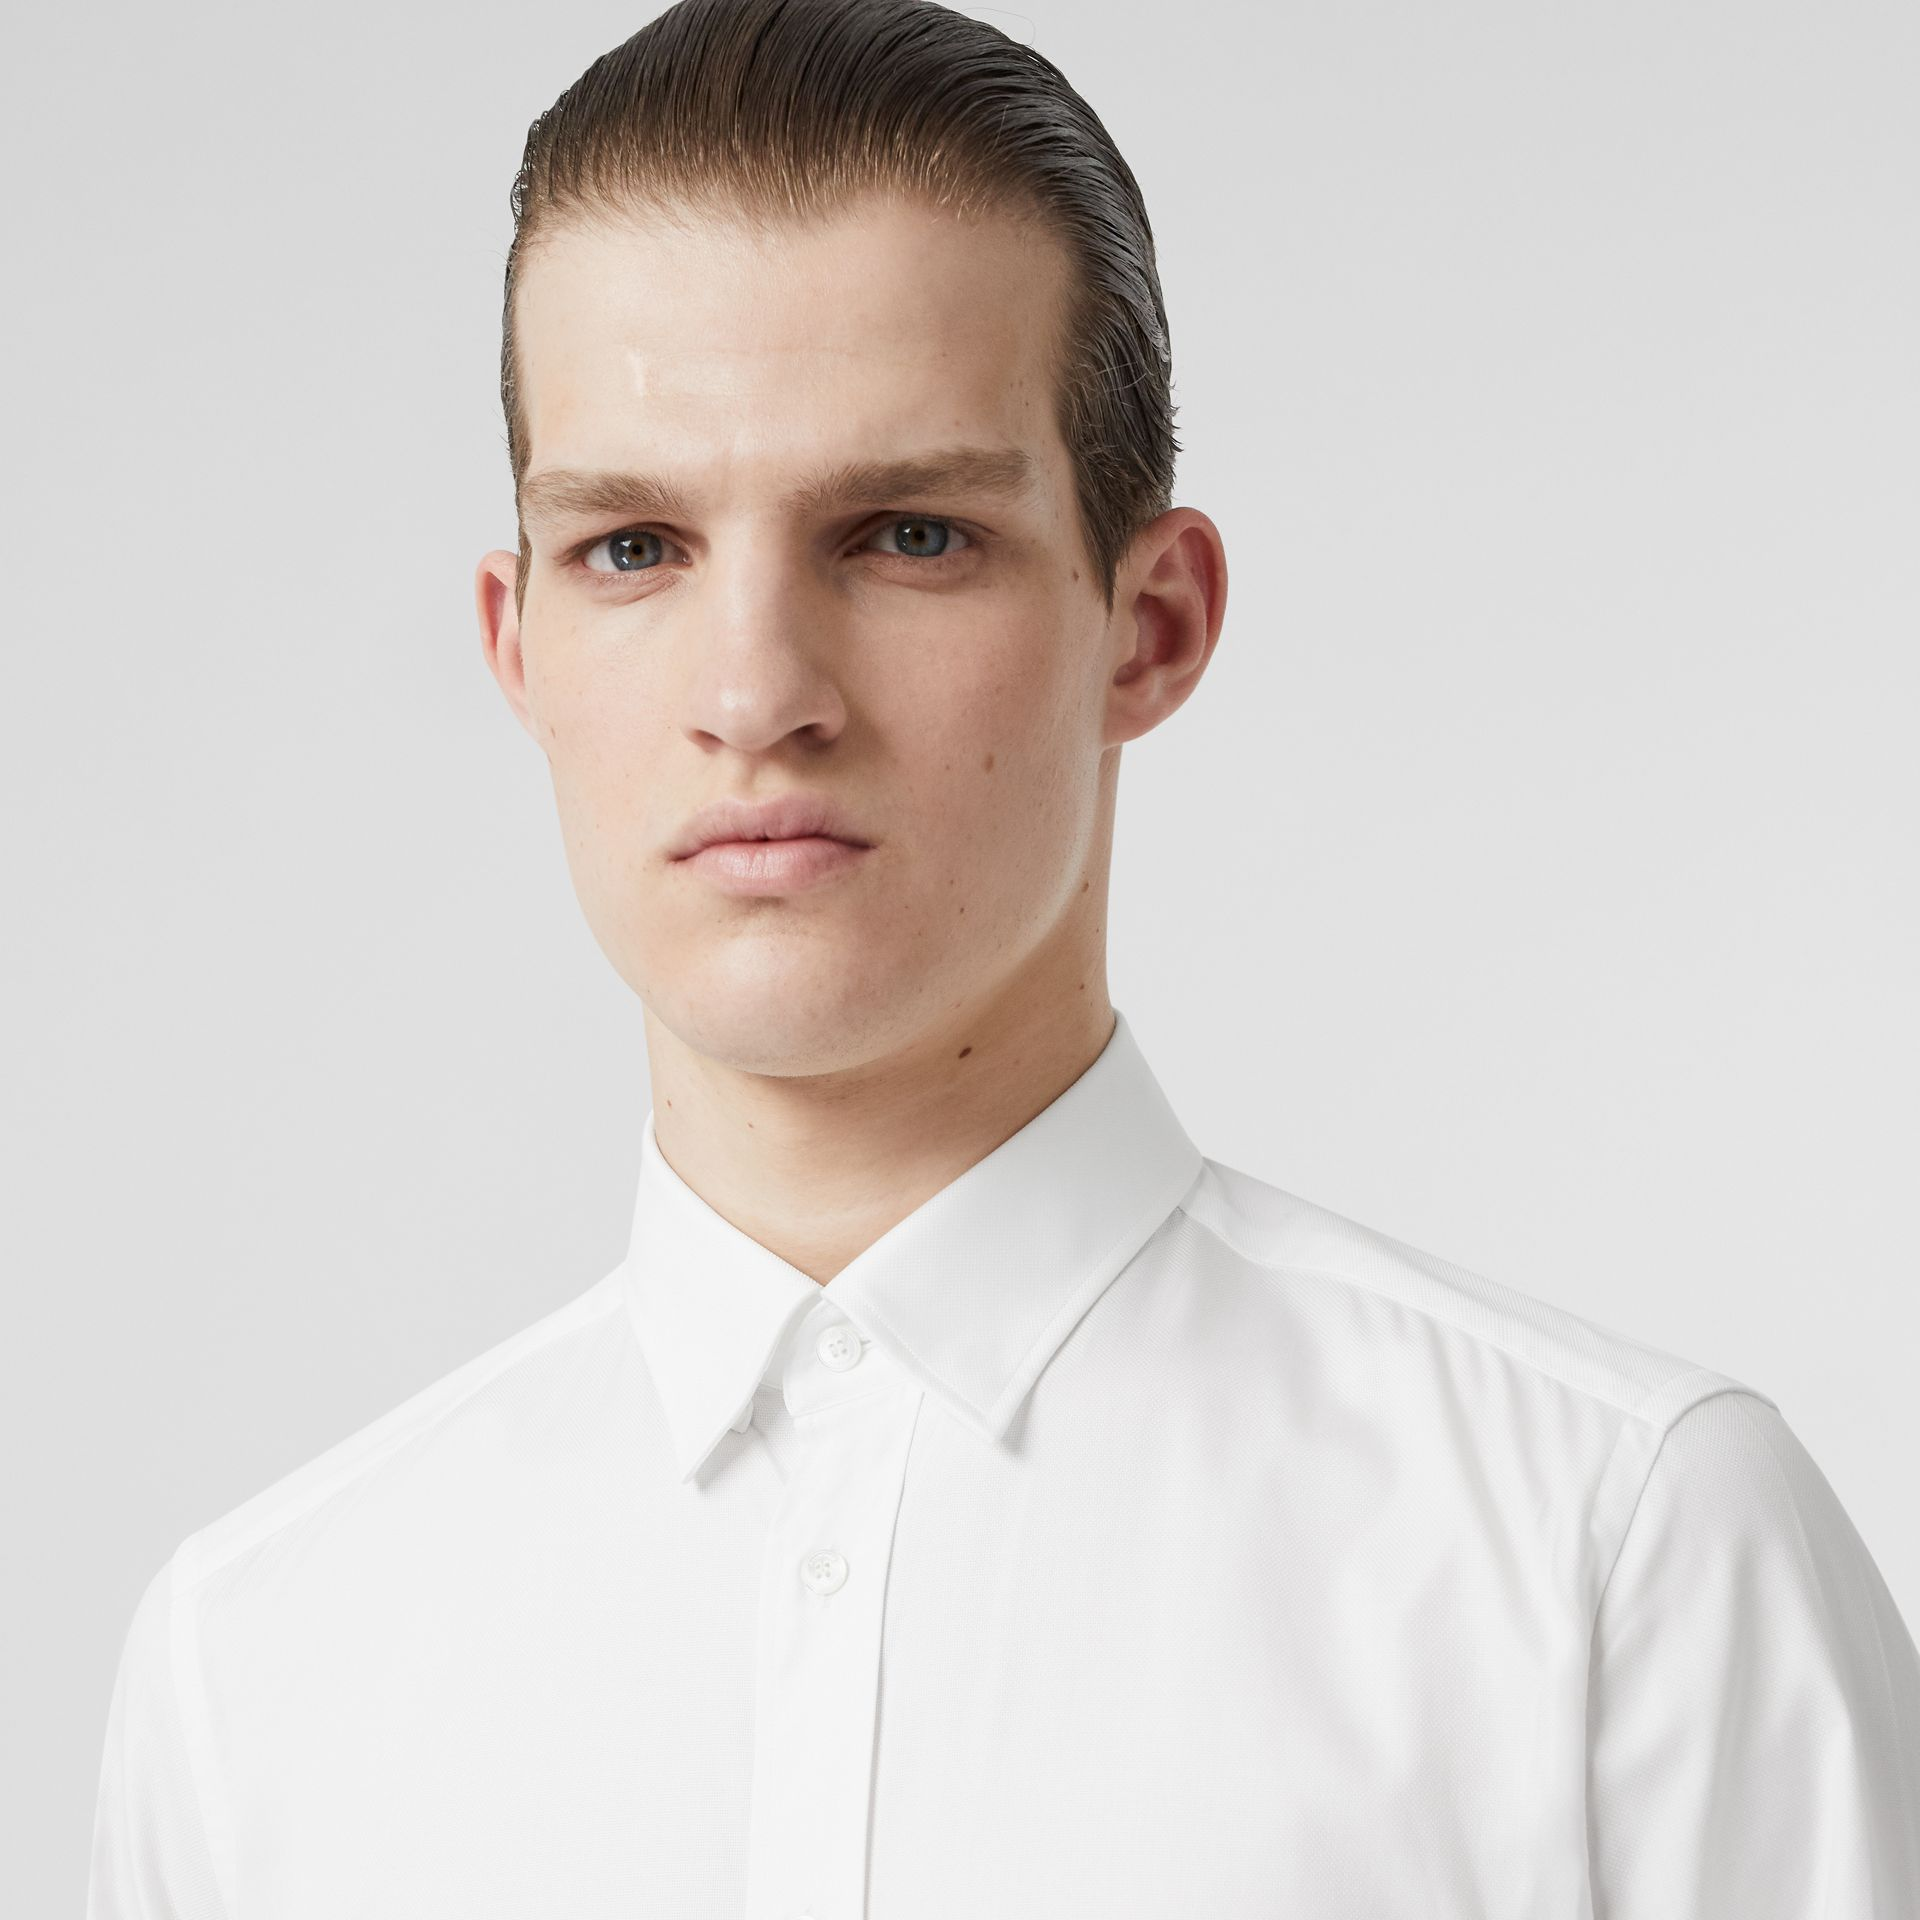 Classic Fit Monogram Motif Cotton Oxford Shirt in White - Men | Burberry Canada - gallery image 1